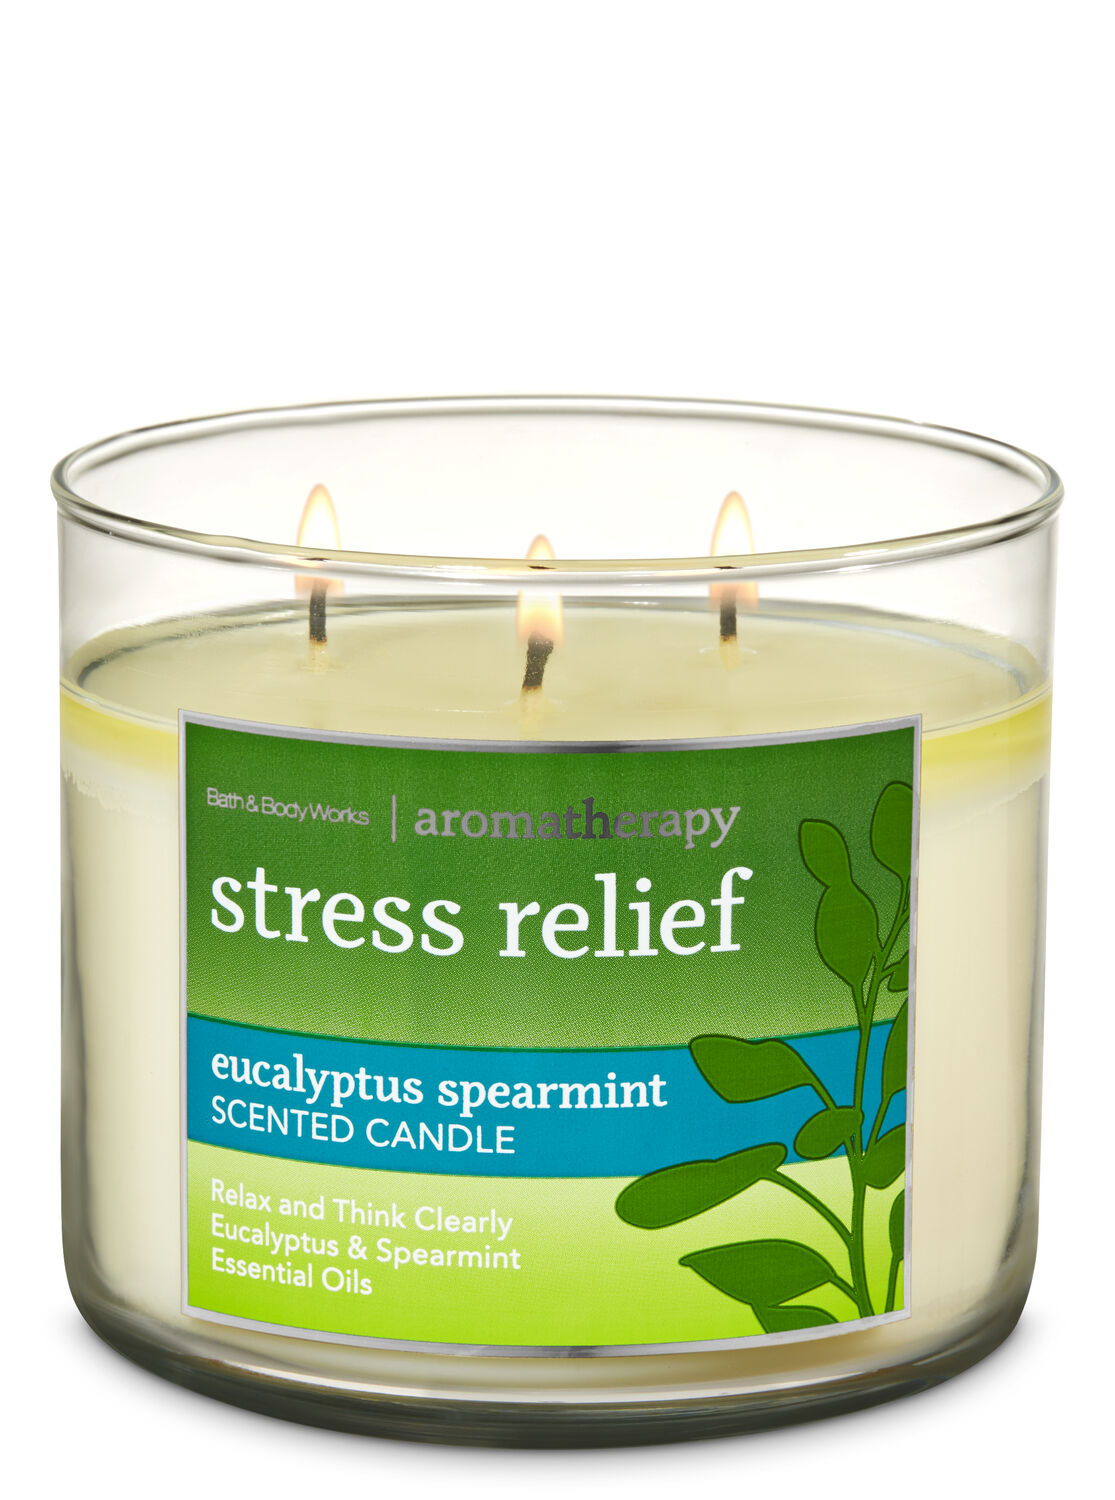 Bath and body works holiday scents - Aromatherapy Eucalyptus Spearmint 3 Wick Candle Bath And Body Works